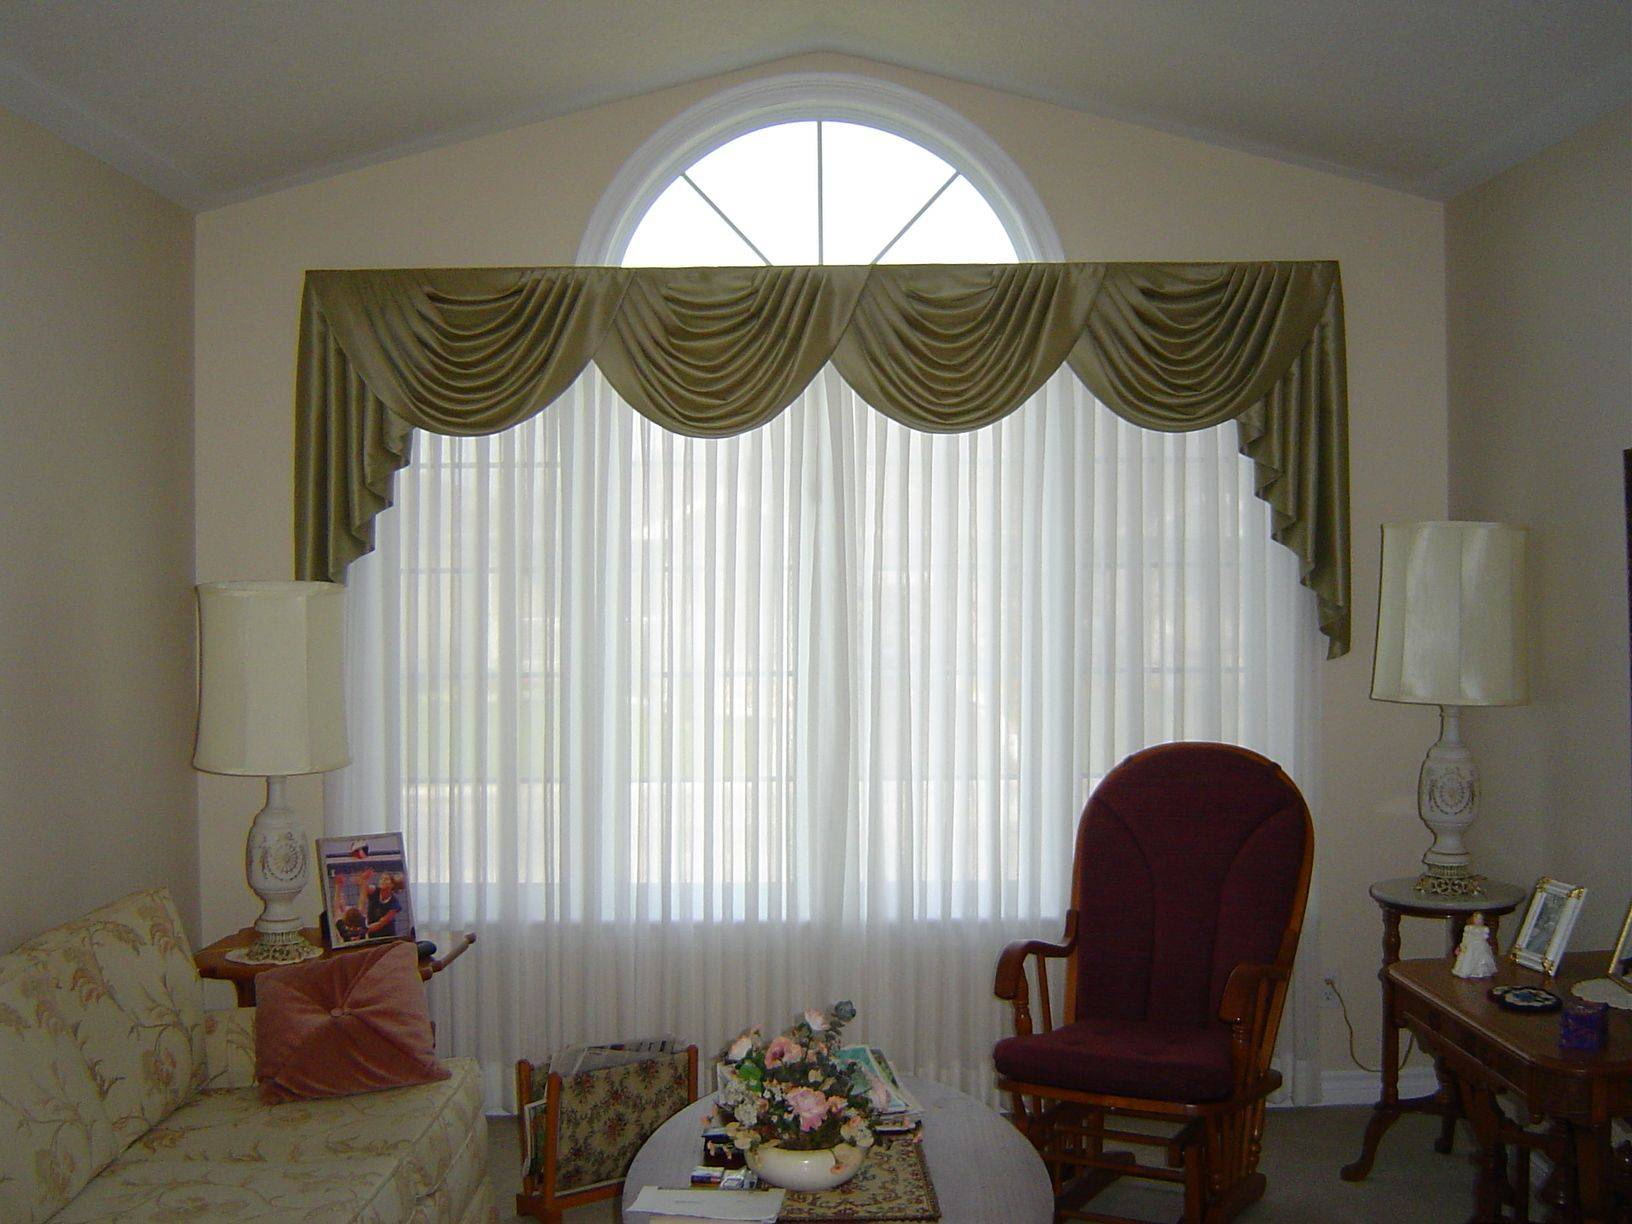 Bedrooms Curtains Definition Shower Full Long Insult Regarding Sheer Lace Elongated Kitchen Curtain Tier Pairs (View 5 of 20)